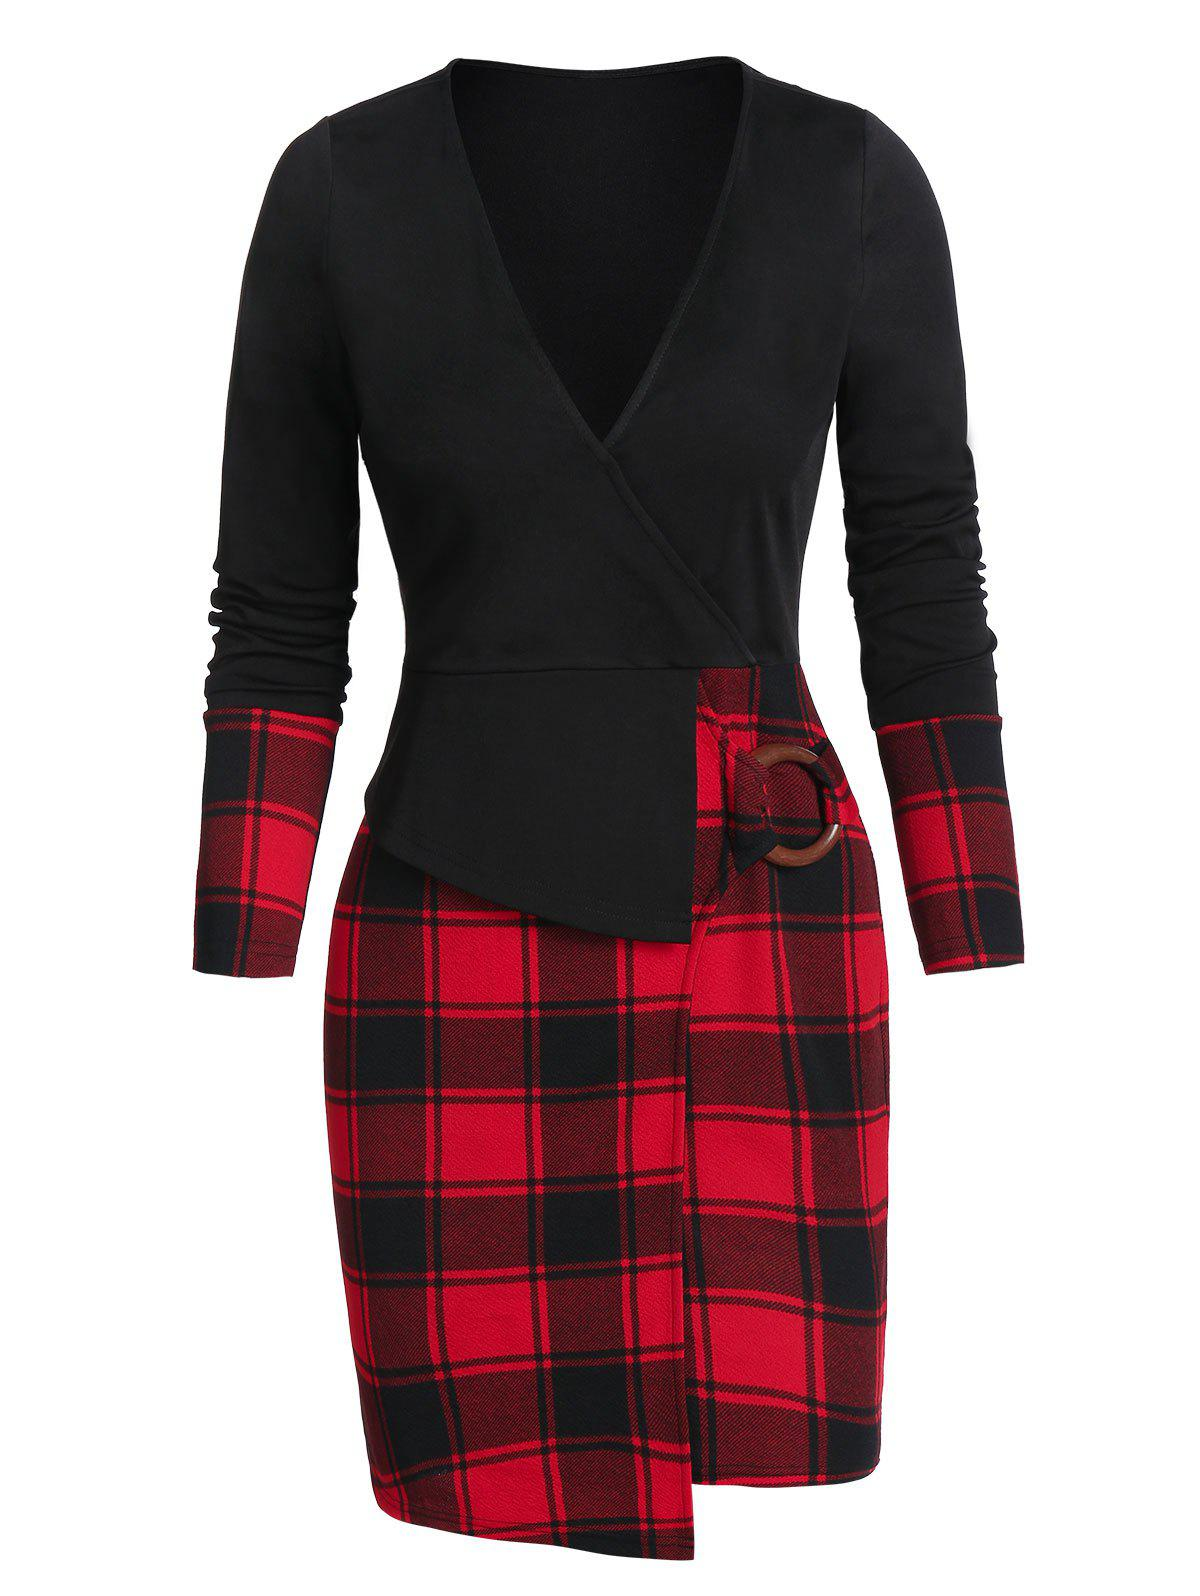 Trendy Asymmetric Plaid Print O-ring Surplice Sheath Dress